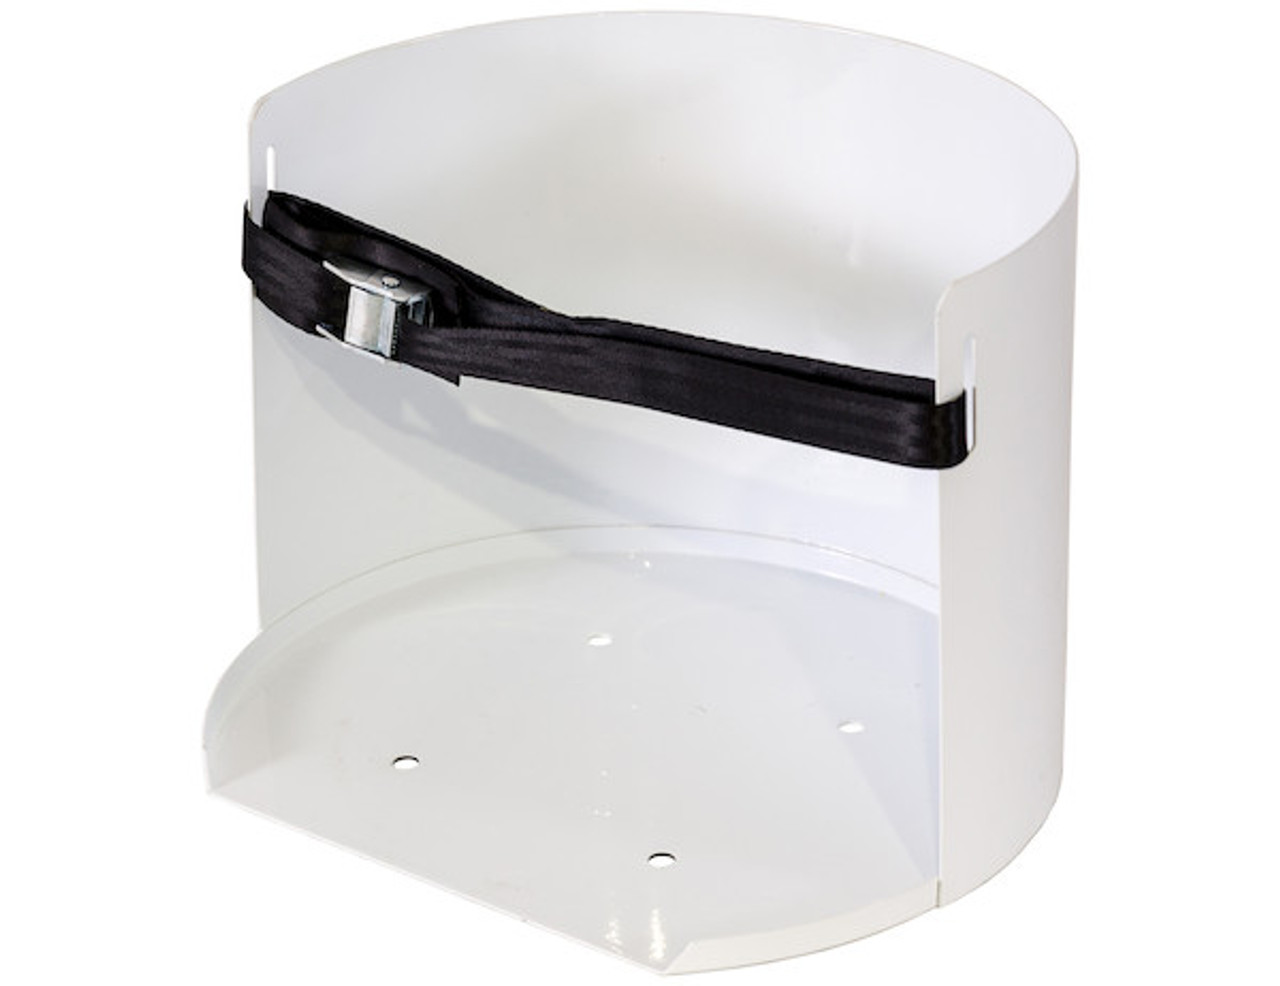 Buyers 5201005 White Steel 5 Gallon Water Cooler Mount for Landscaping Trailers, Garages, Sheds, Work Trucks Picture # 1